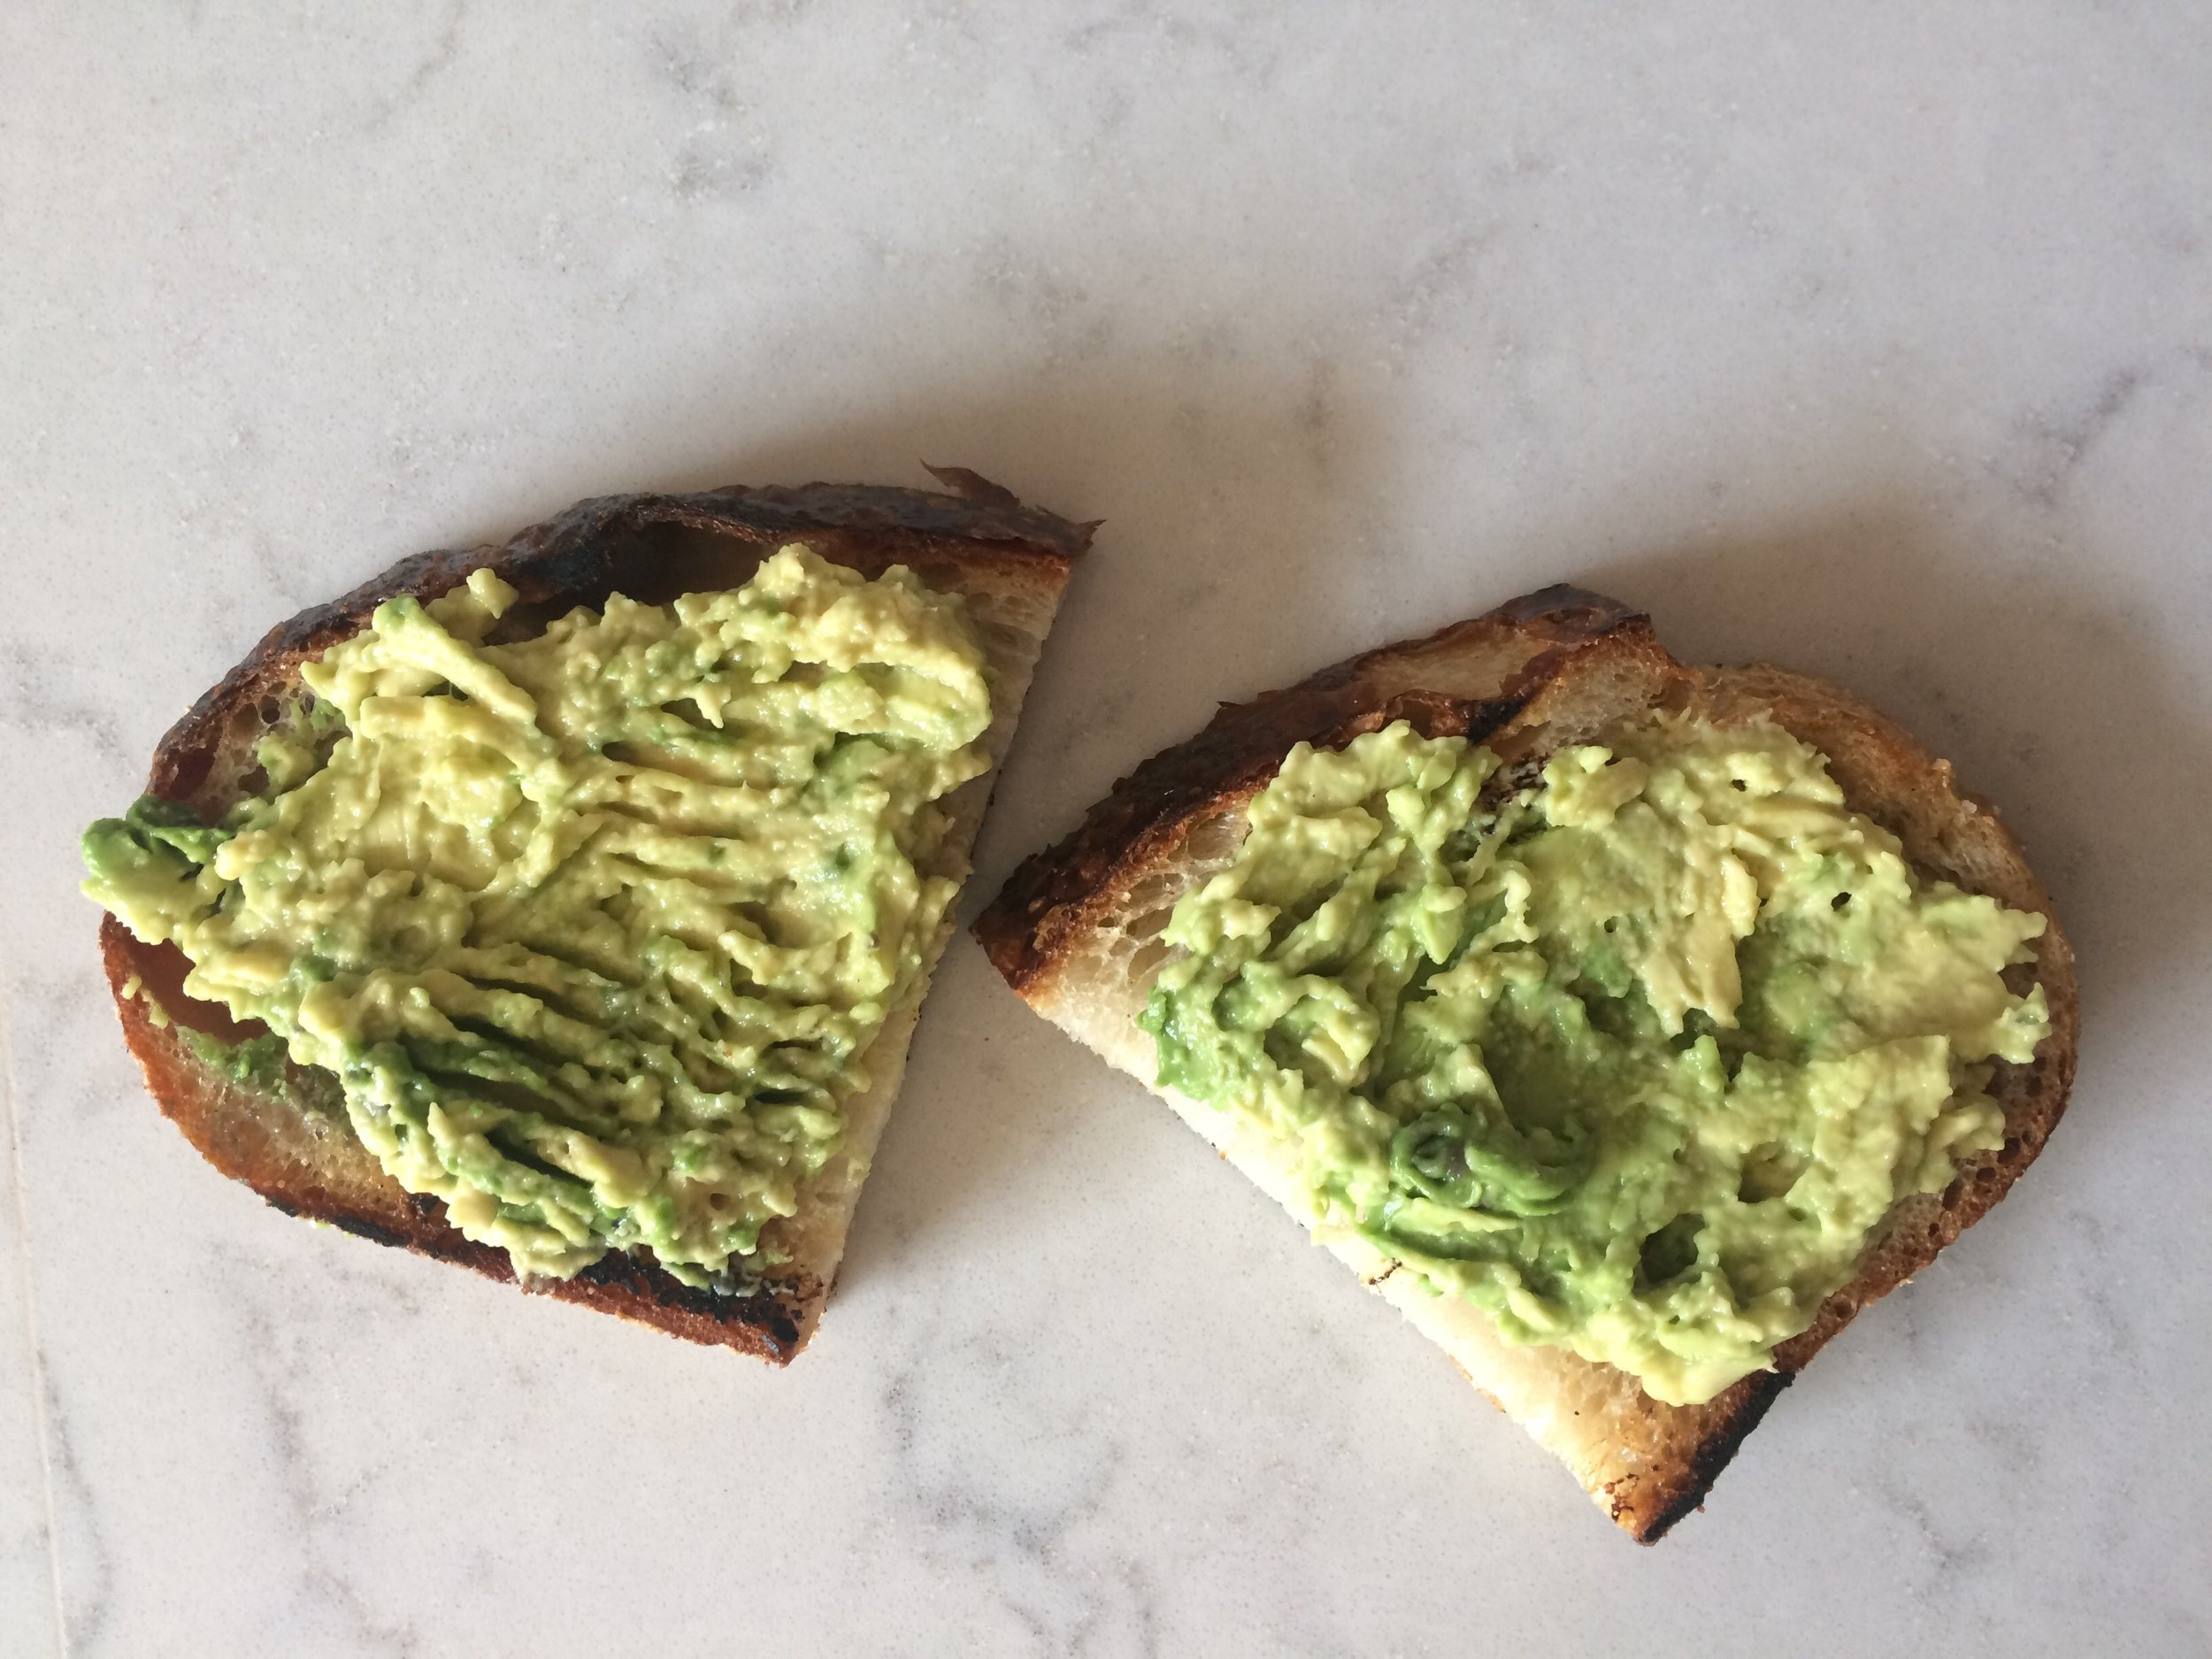 the based of elotes avocado toast || planting my roots